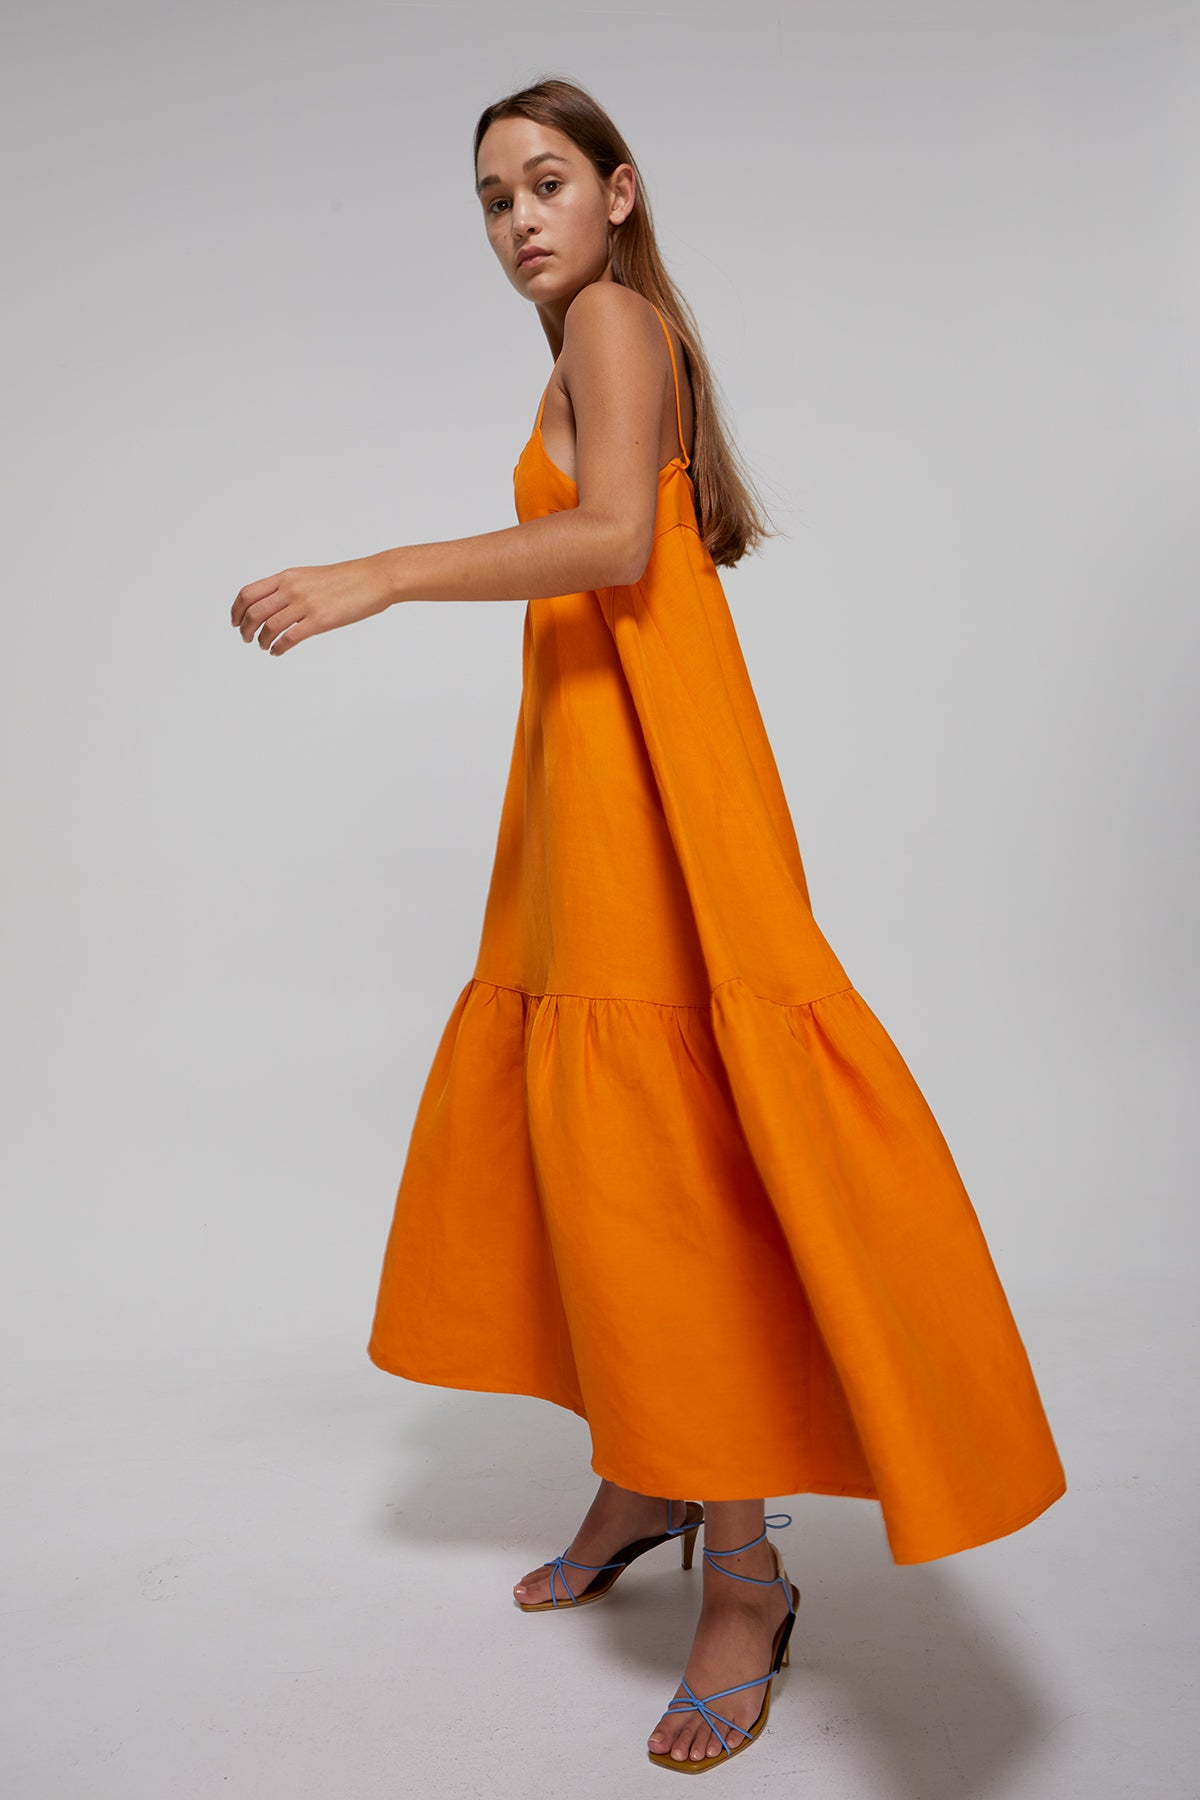 Ghini Dress Gregory SS20 Collection NZ Sustainable Fashion Design